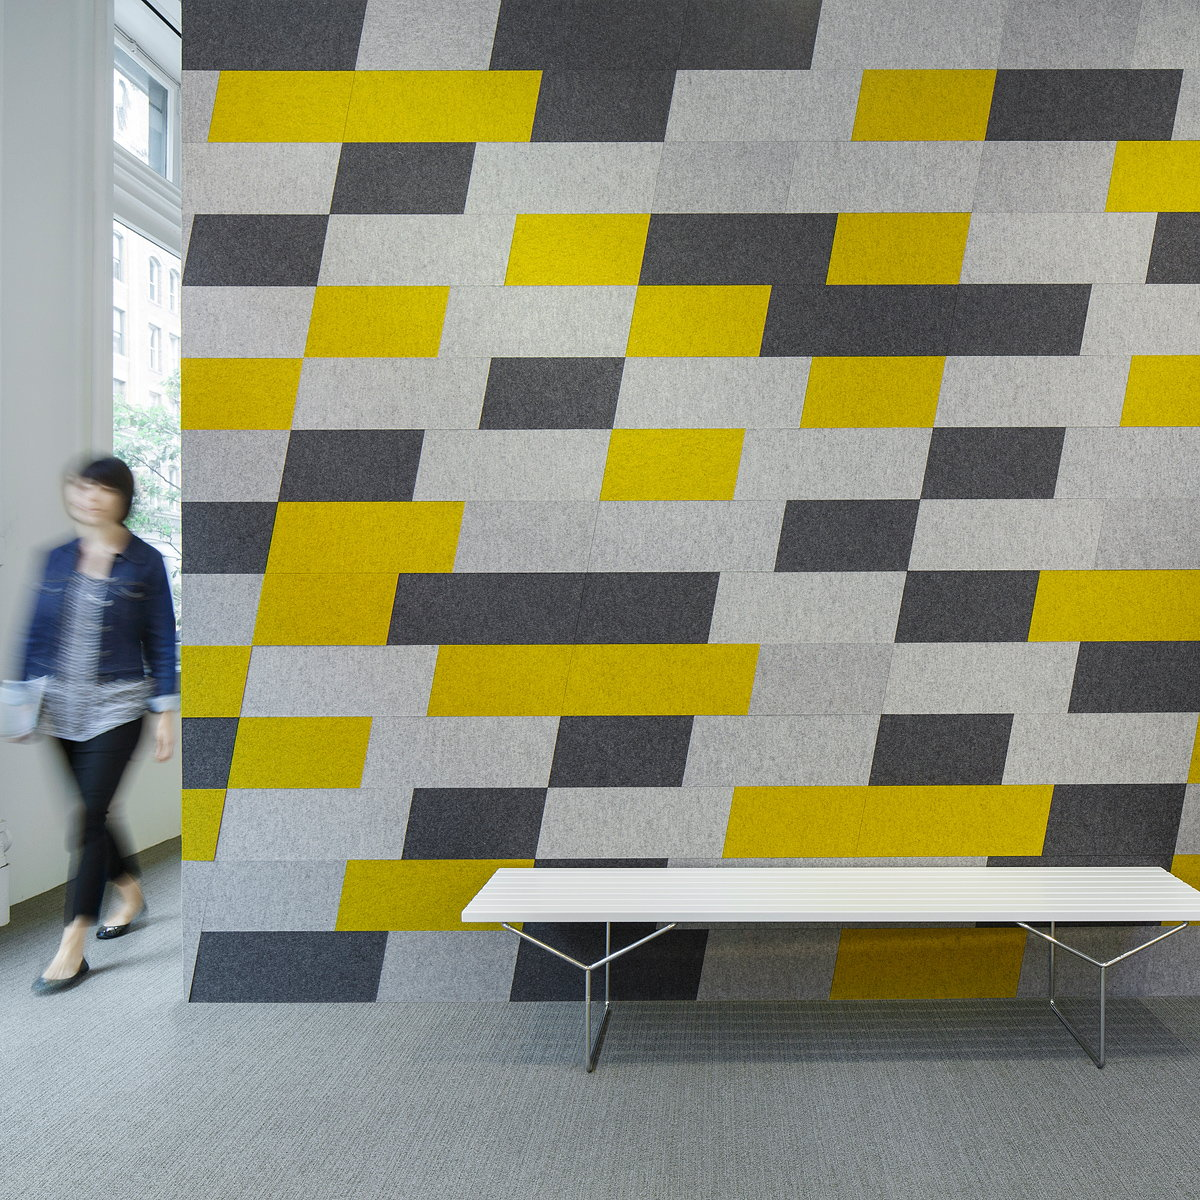 Architecture Research Office Designs New Acoustic Tile Collection for FilzFelt